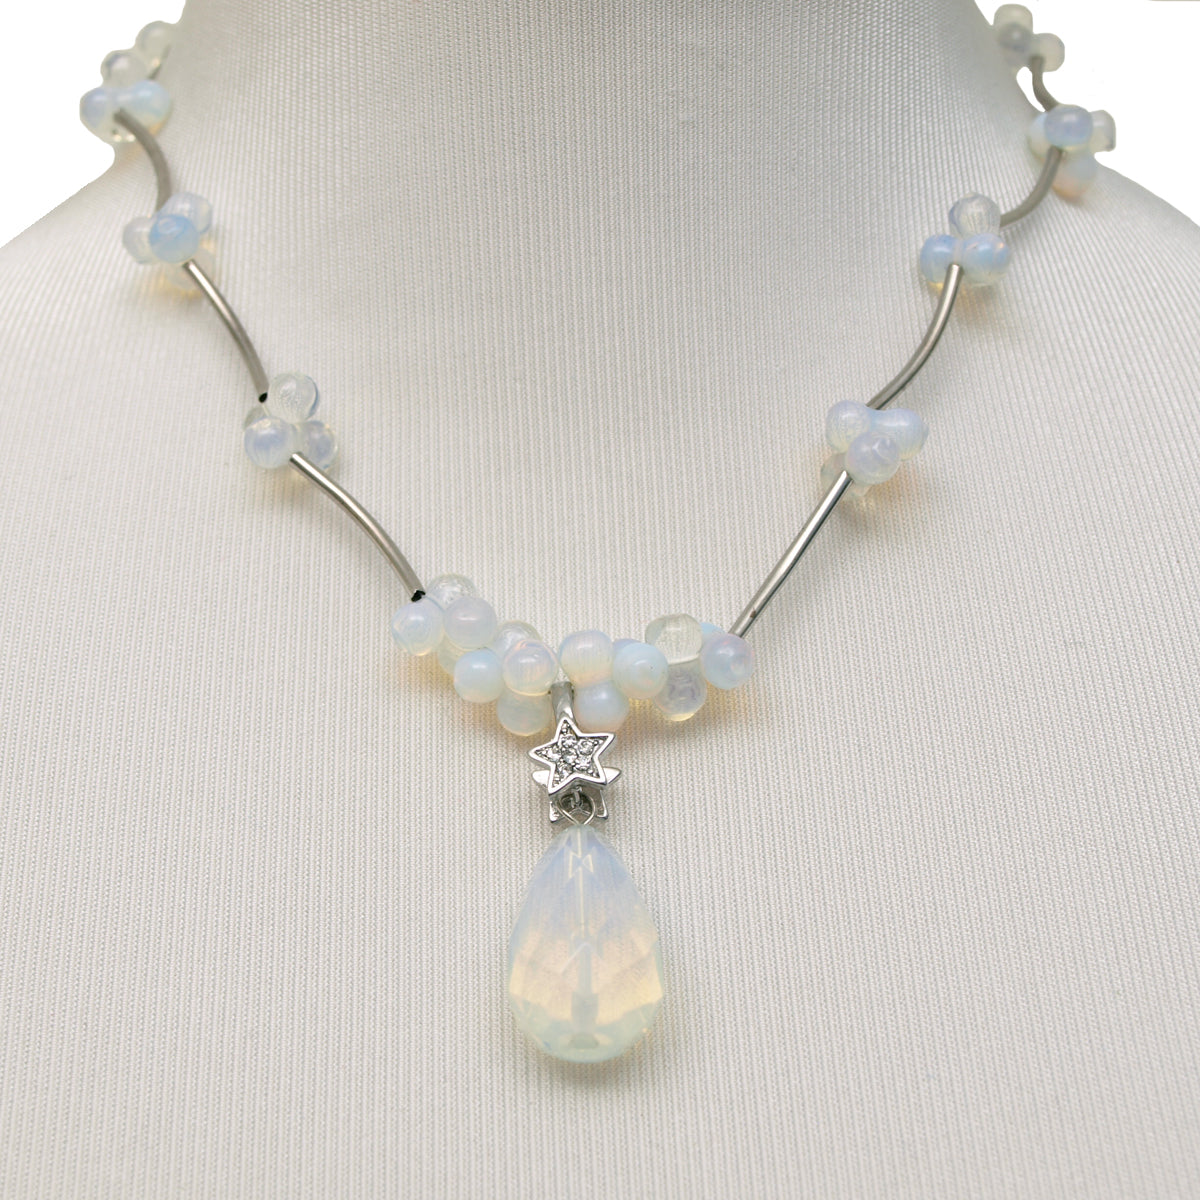 Opal Clusters with Teardrop Pendant Necklace, 17 inches